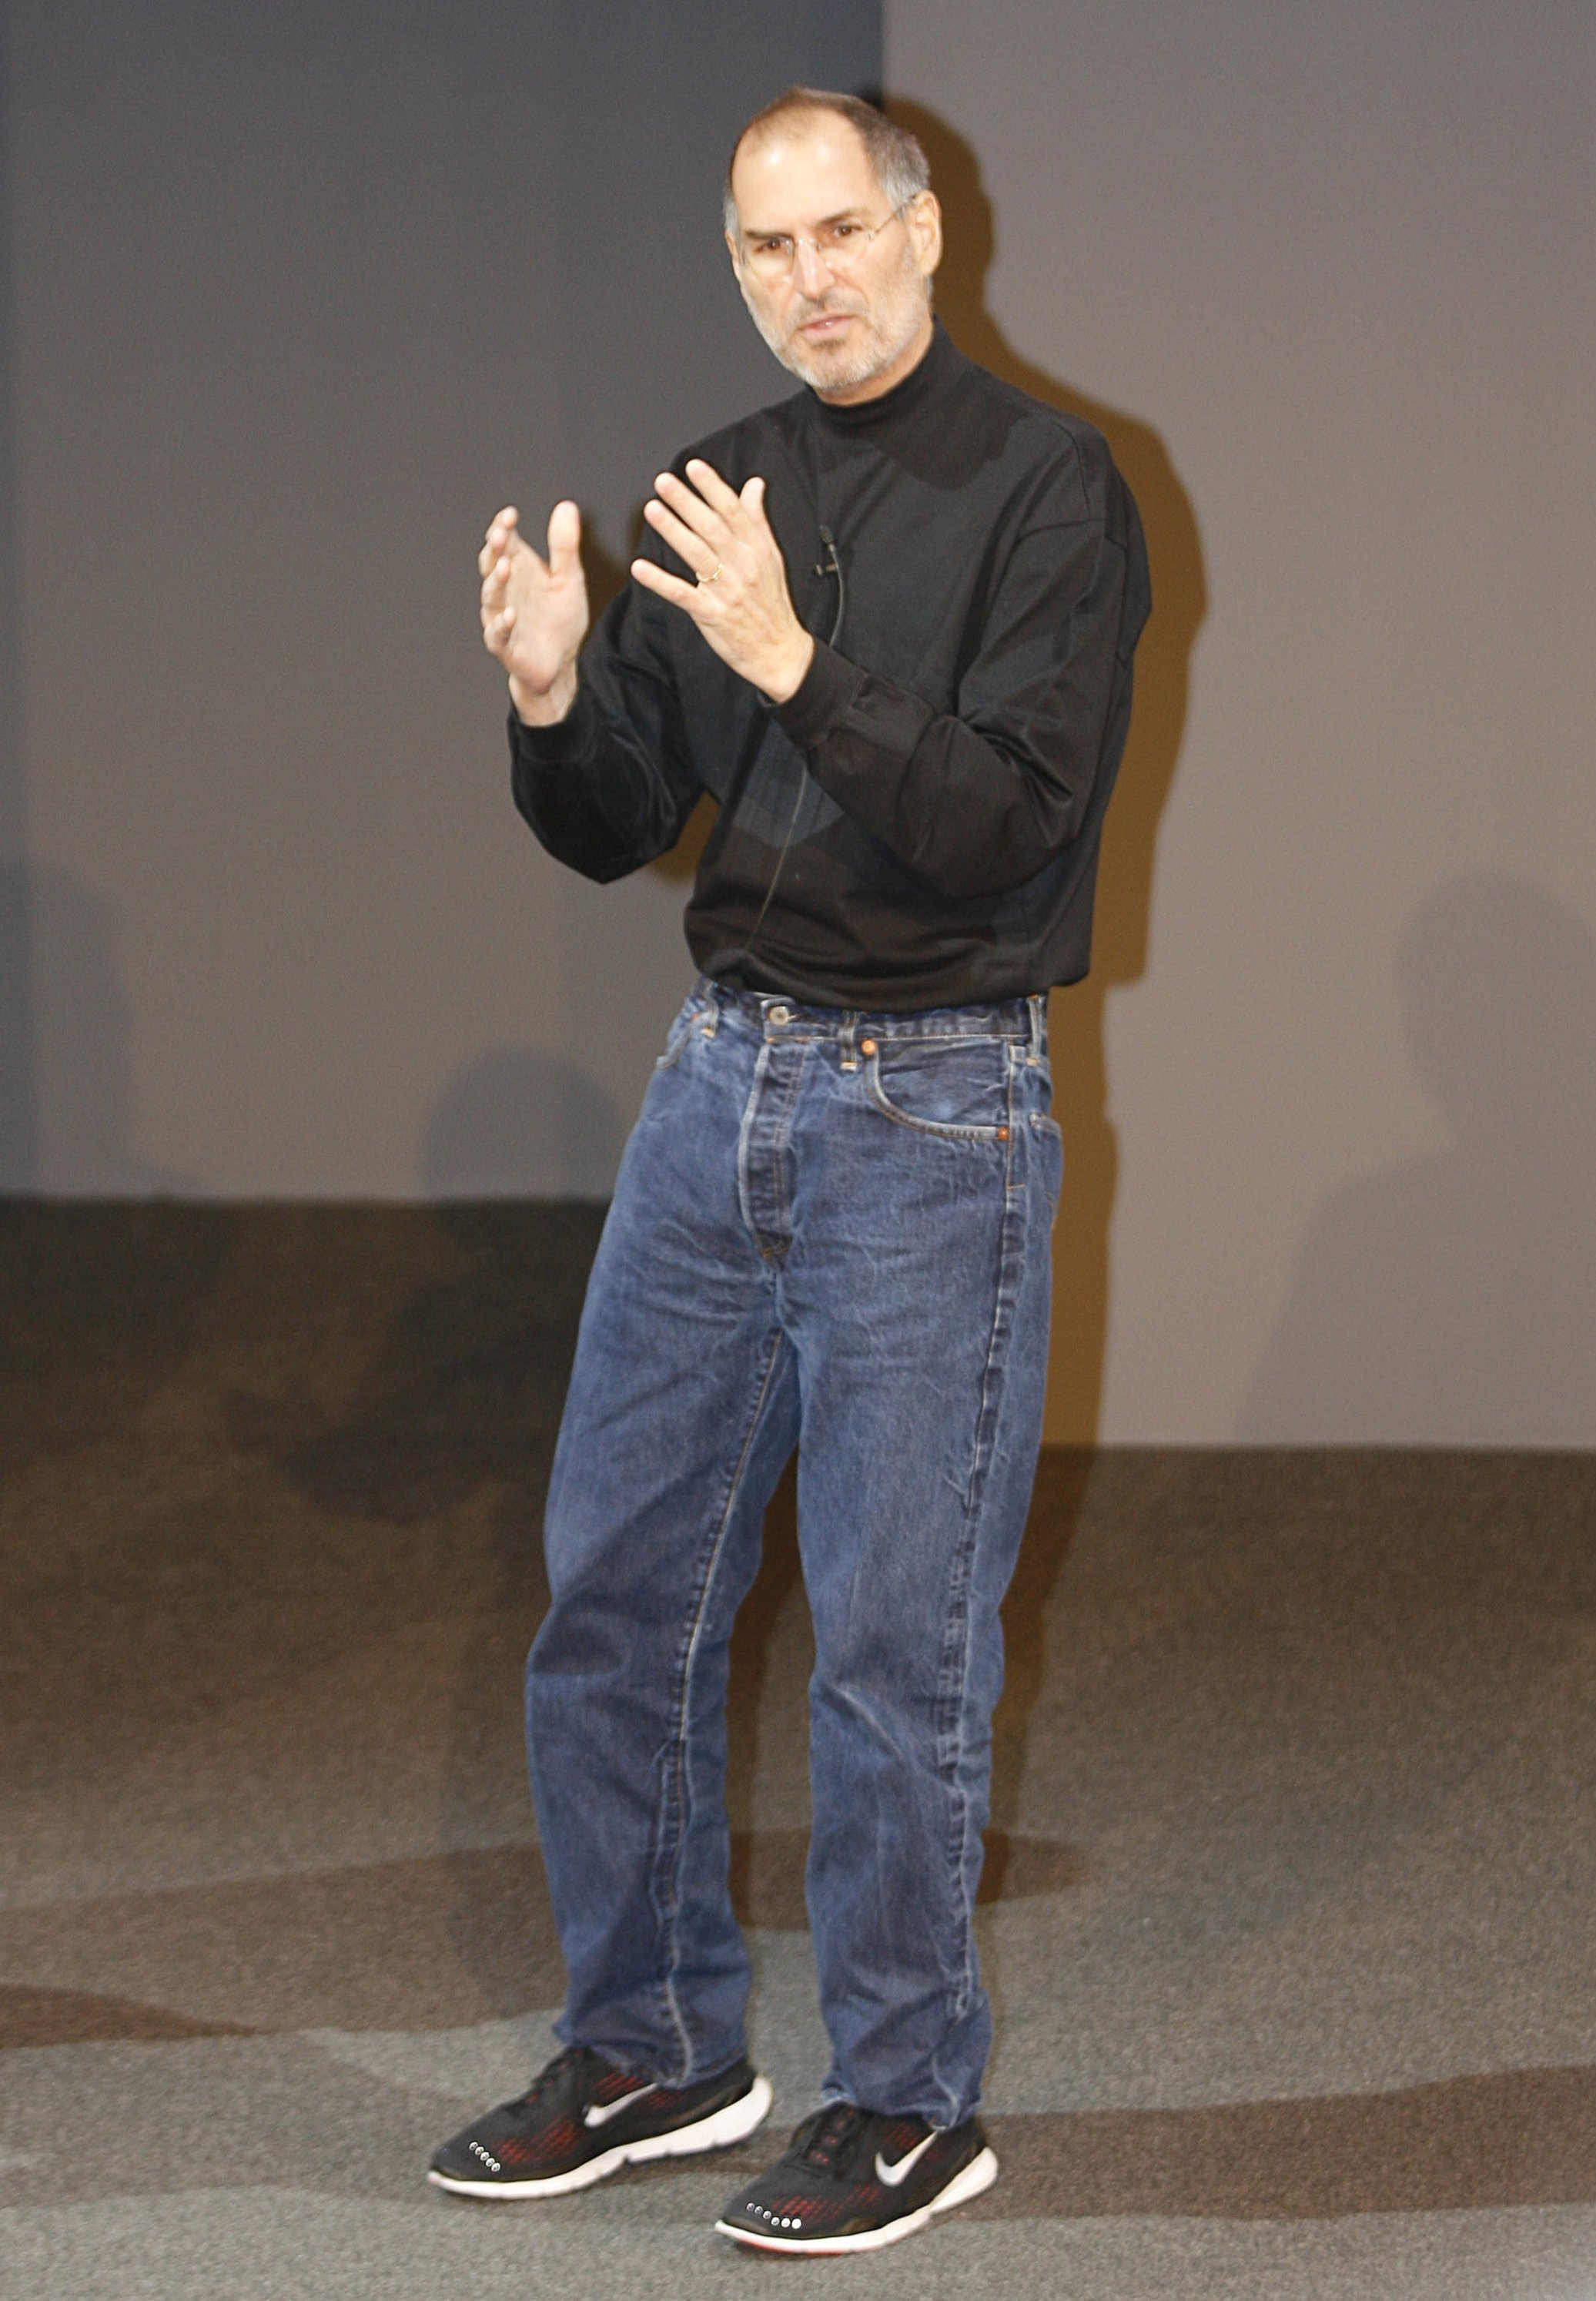 Steve Jobs wearing a black turtleneck sweater, blue jeans and sports shoes at Apple events